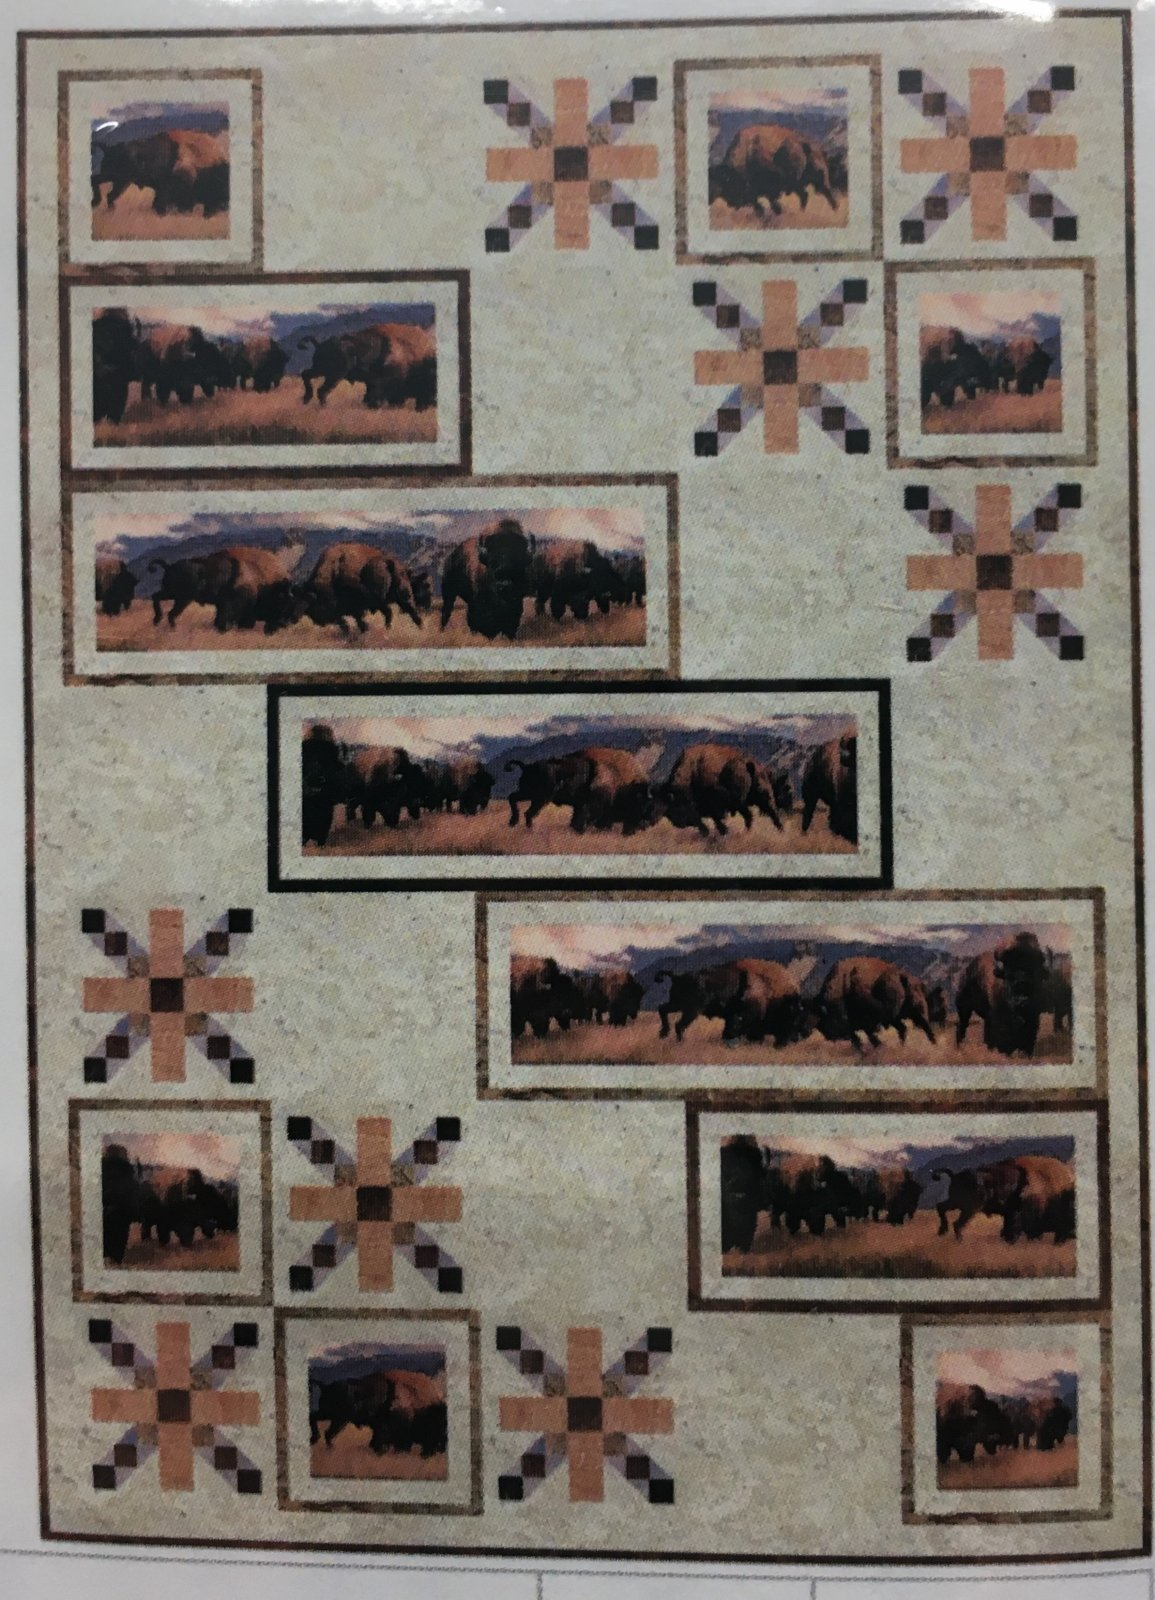 Bison at the Border Kit Lap 48 x 66